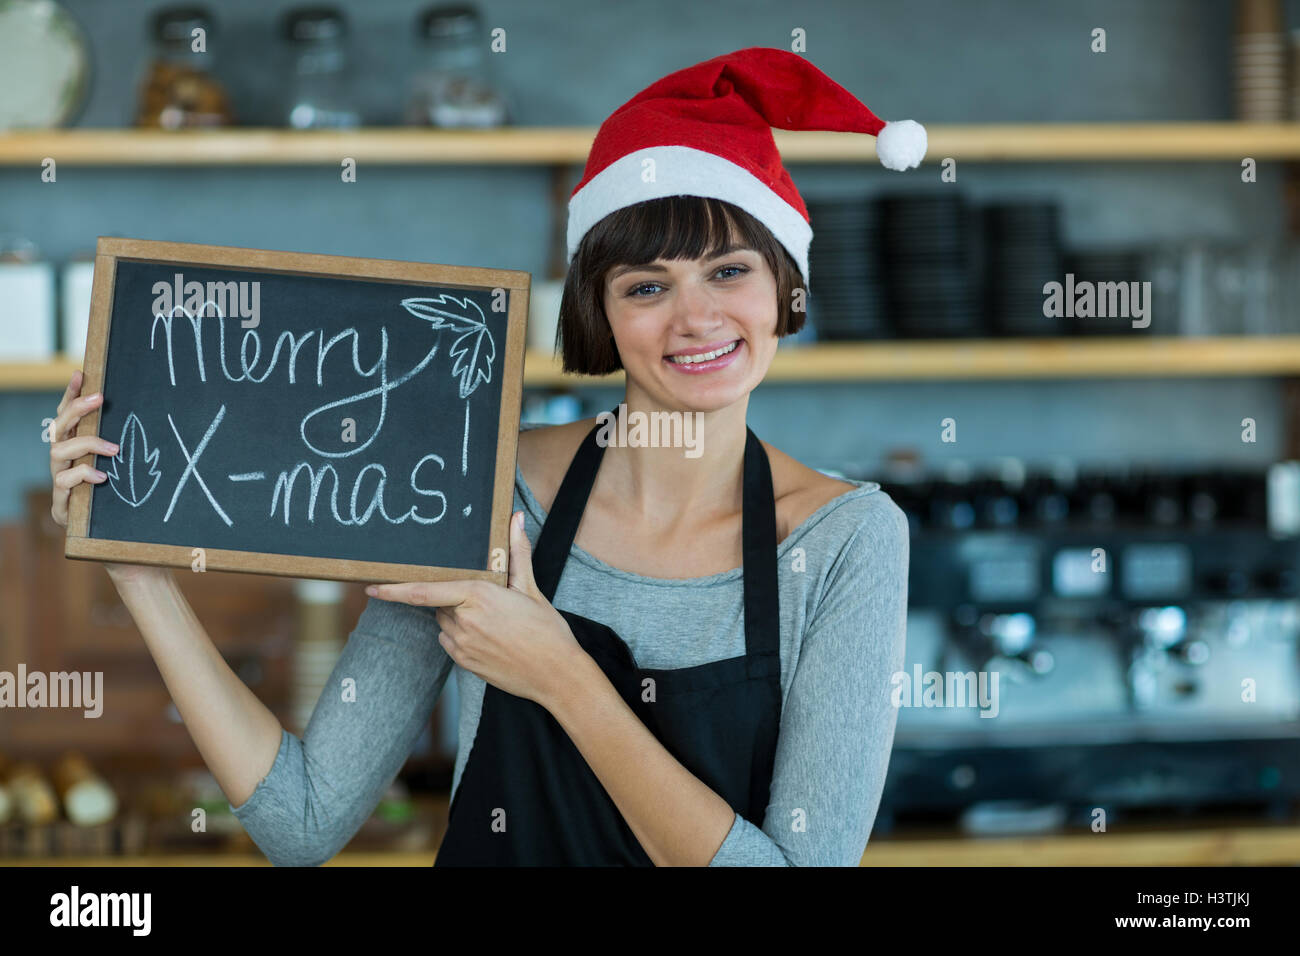 Portrait of waitress showing slate with merry x-mas sign - Stock Image